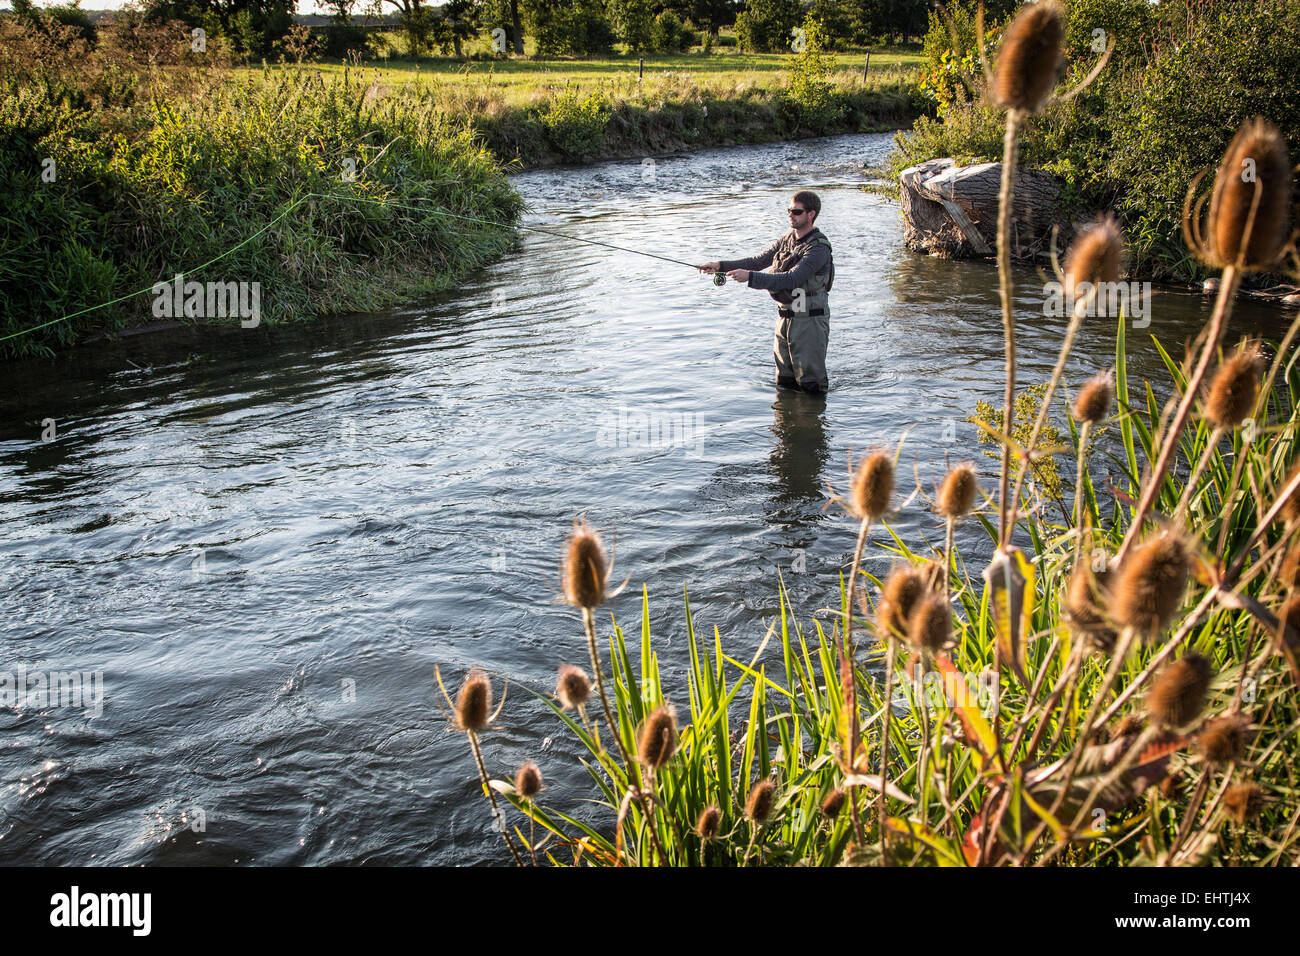 FLY FISHING IN THE EURE (27), FRANCE - Stock Image